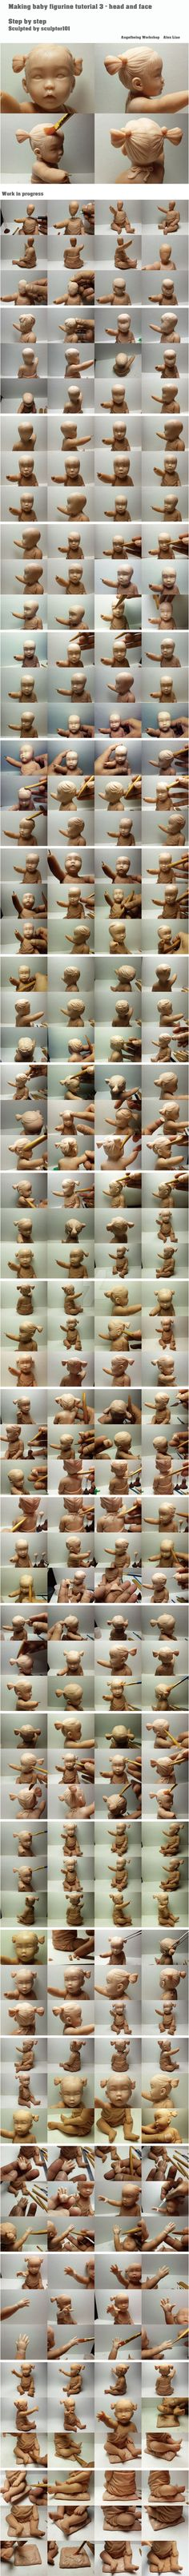 Making baby figurine tutorial 3 by sculptor101.deviantart.com on @DeviantArt